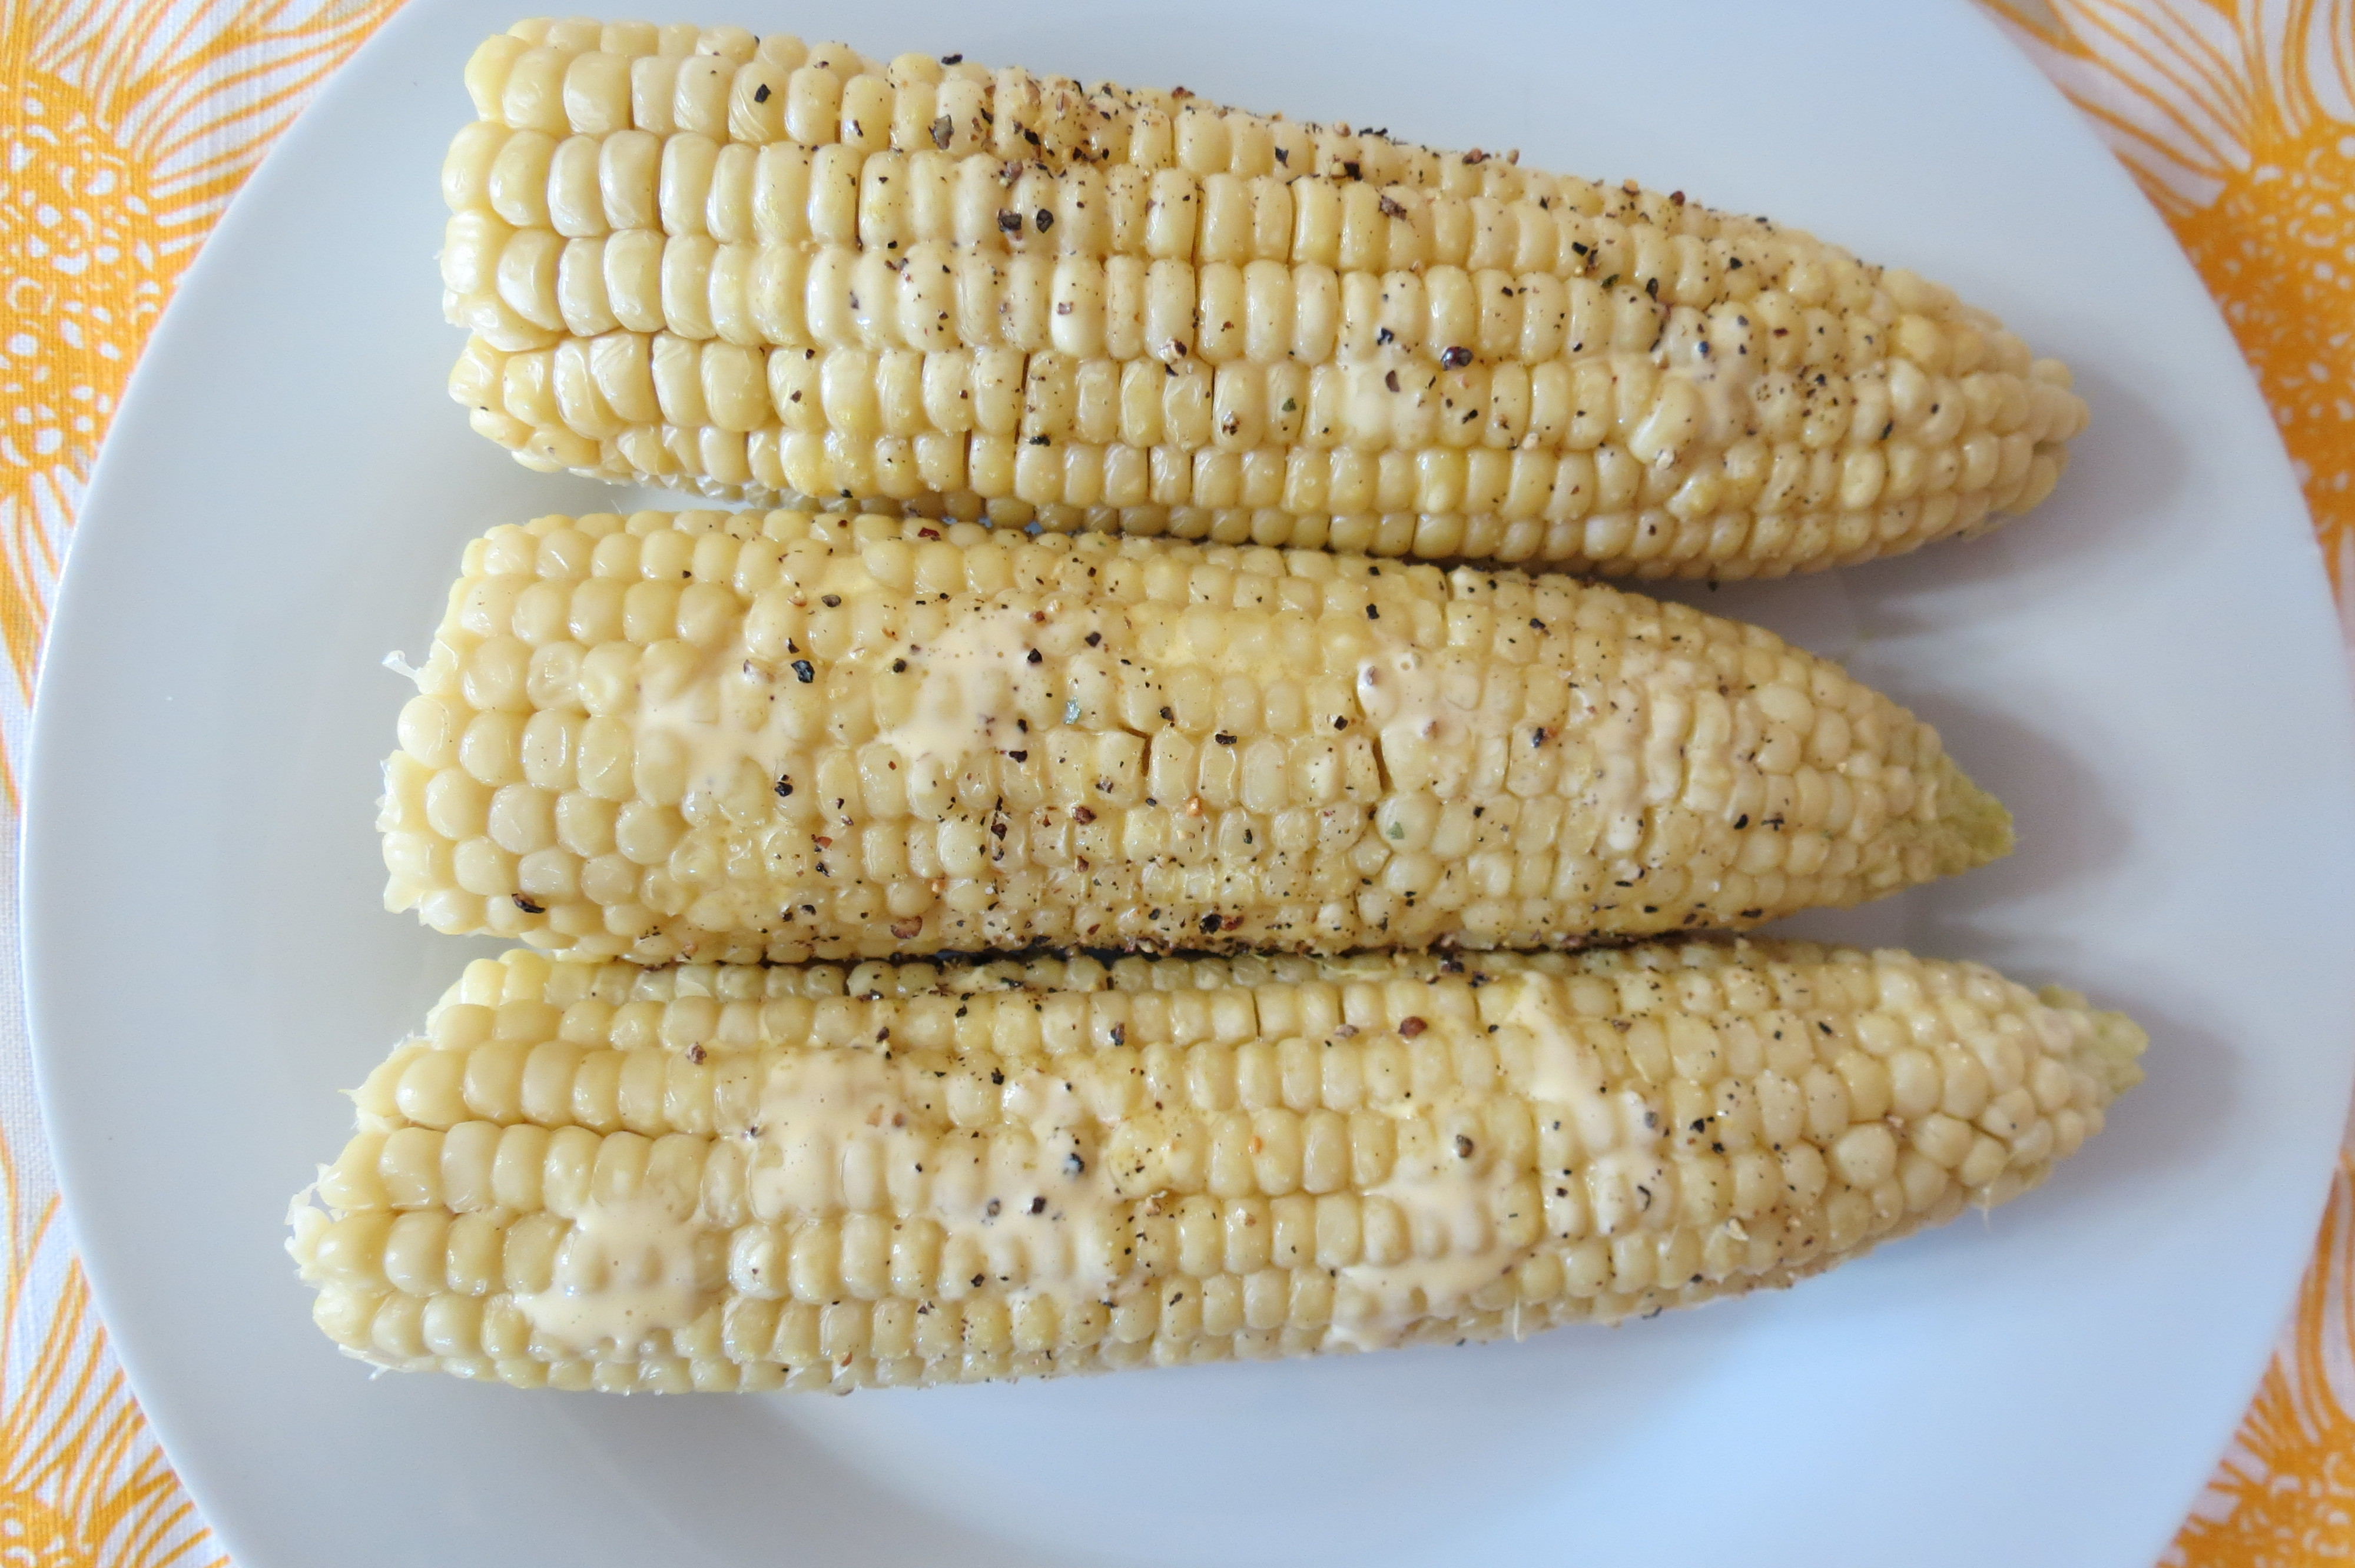 Quick Easy Way to Make Corn on the Cob